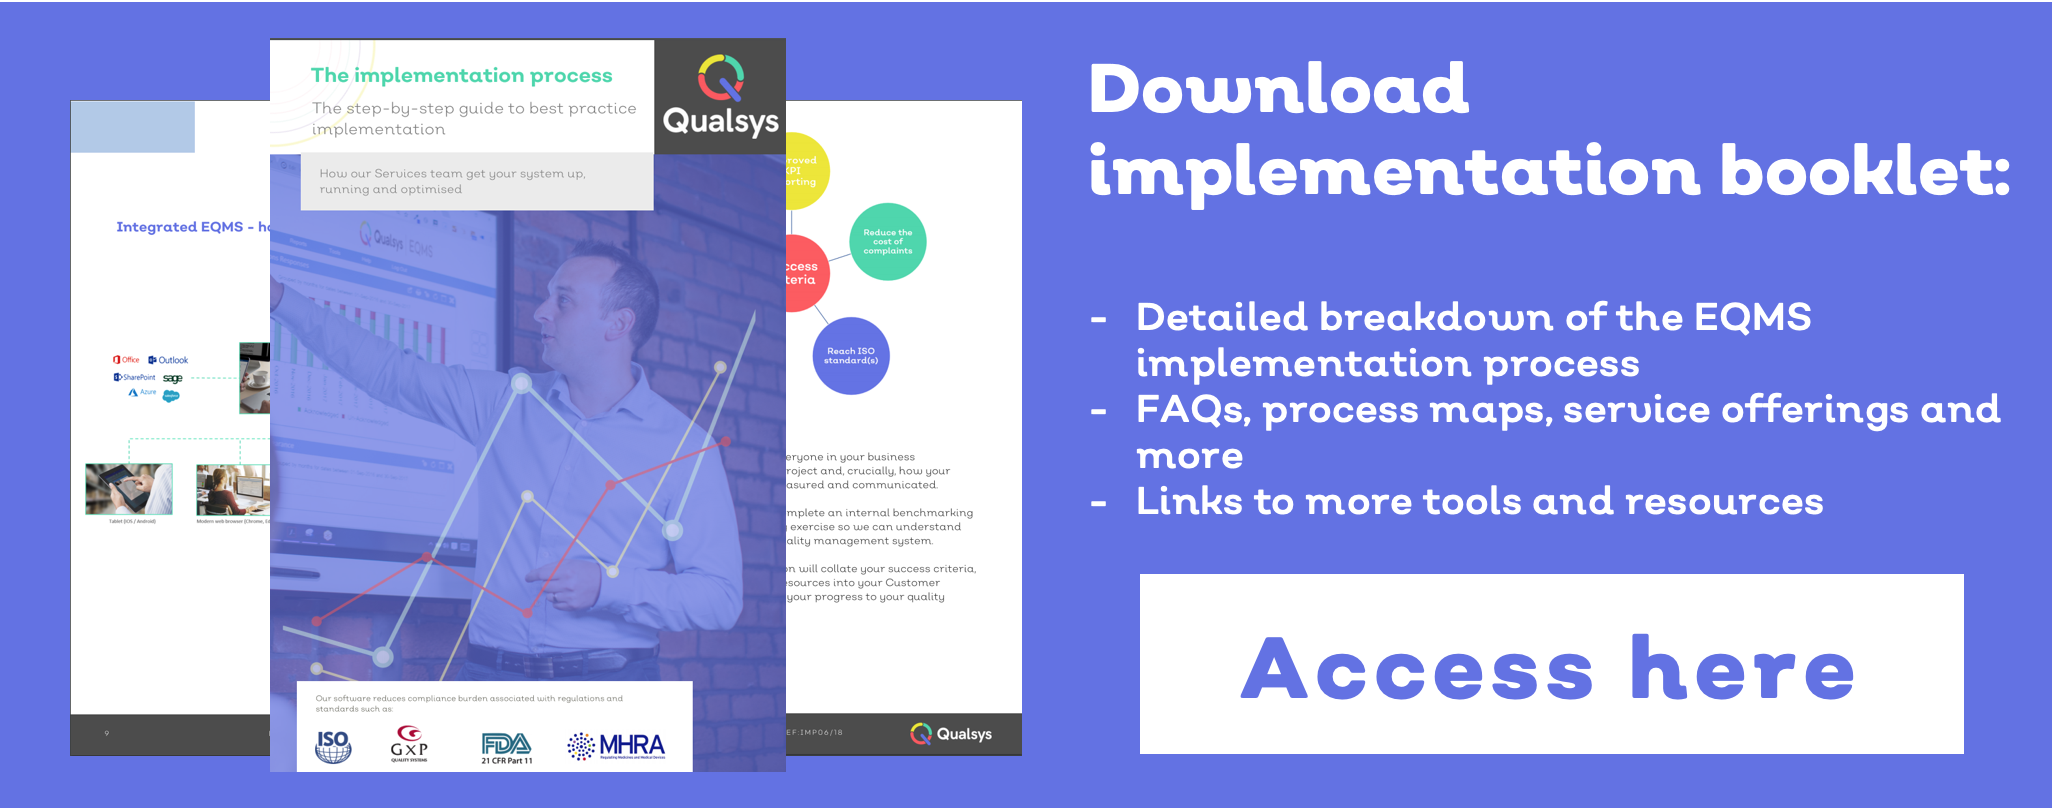 EQMS implementation booklet